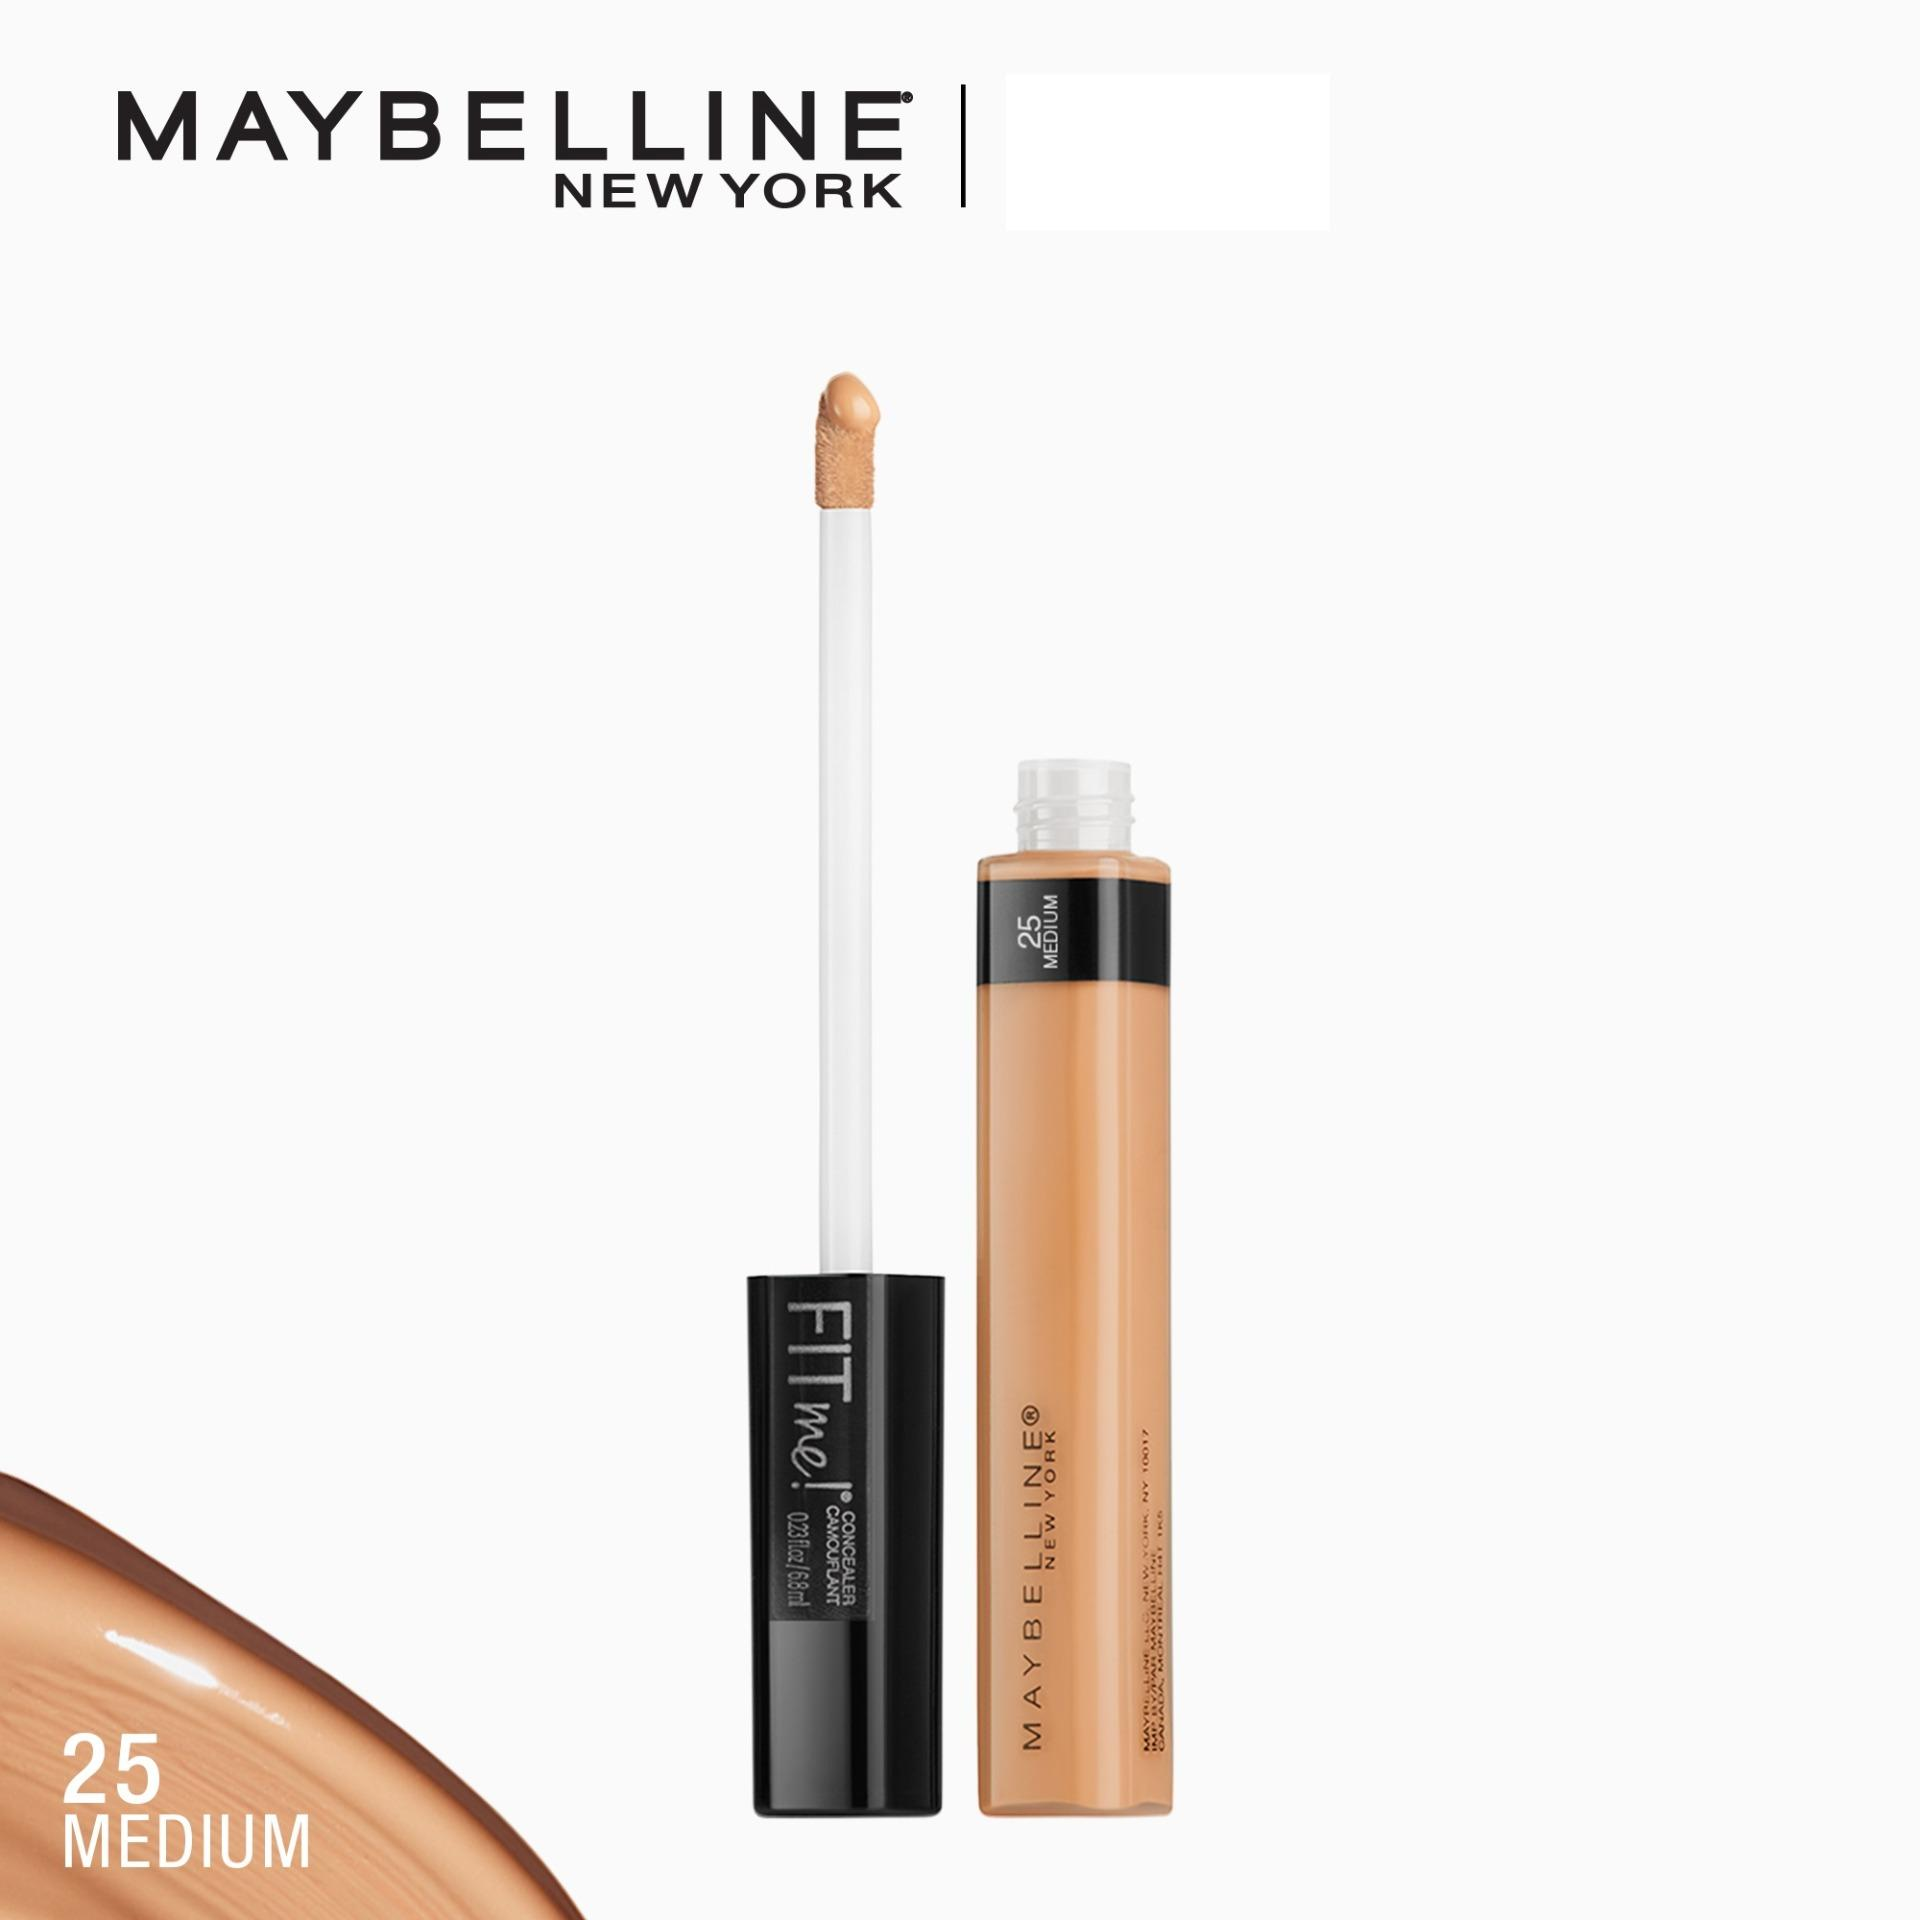 MAYBELLINE Fit Me Flawless Natural Concealer - 25 Medium Philippines